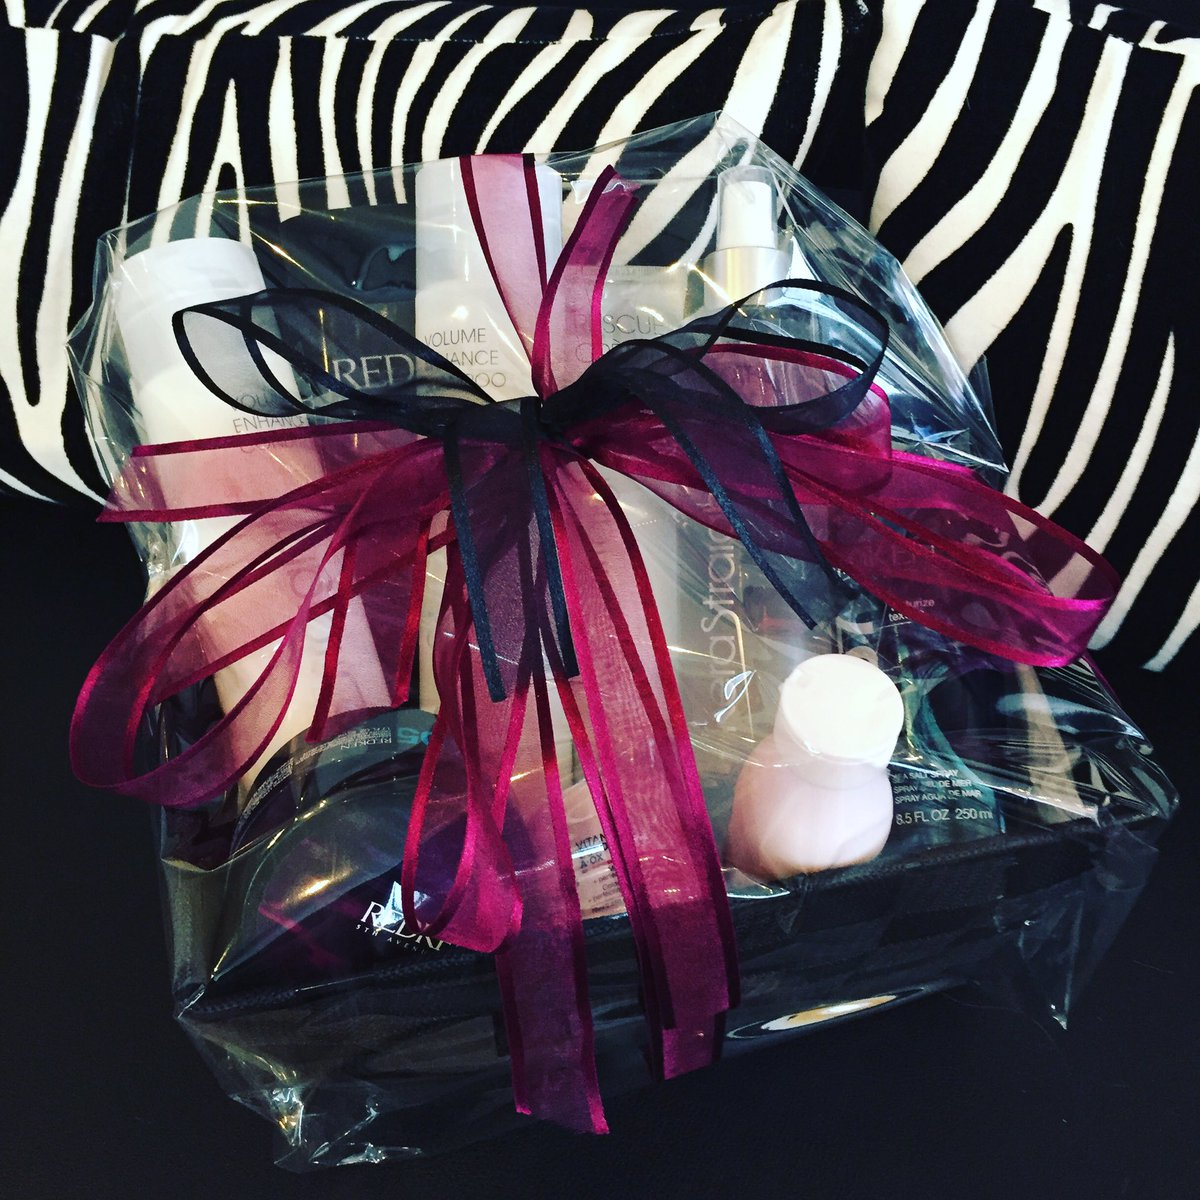 We love to help wherever we can. Raffle prize for Jackie, we hope you raise lots of money #raffle #prize #charity #giftbasket #ribbon <br>http://pic.twitter.com/hT0erROOTL